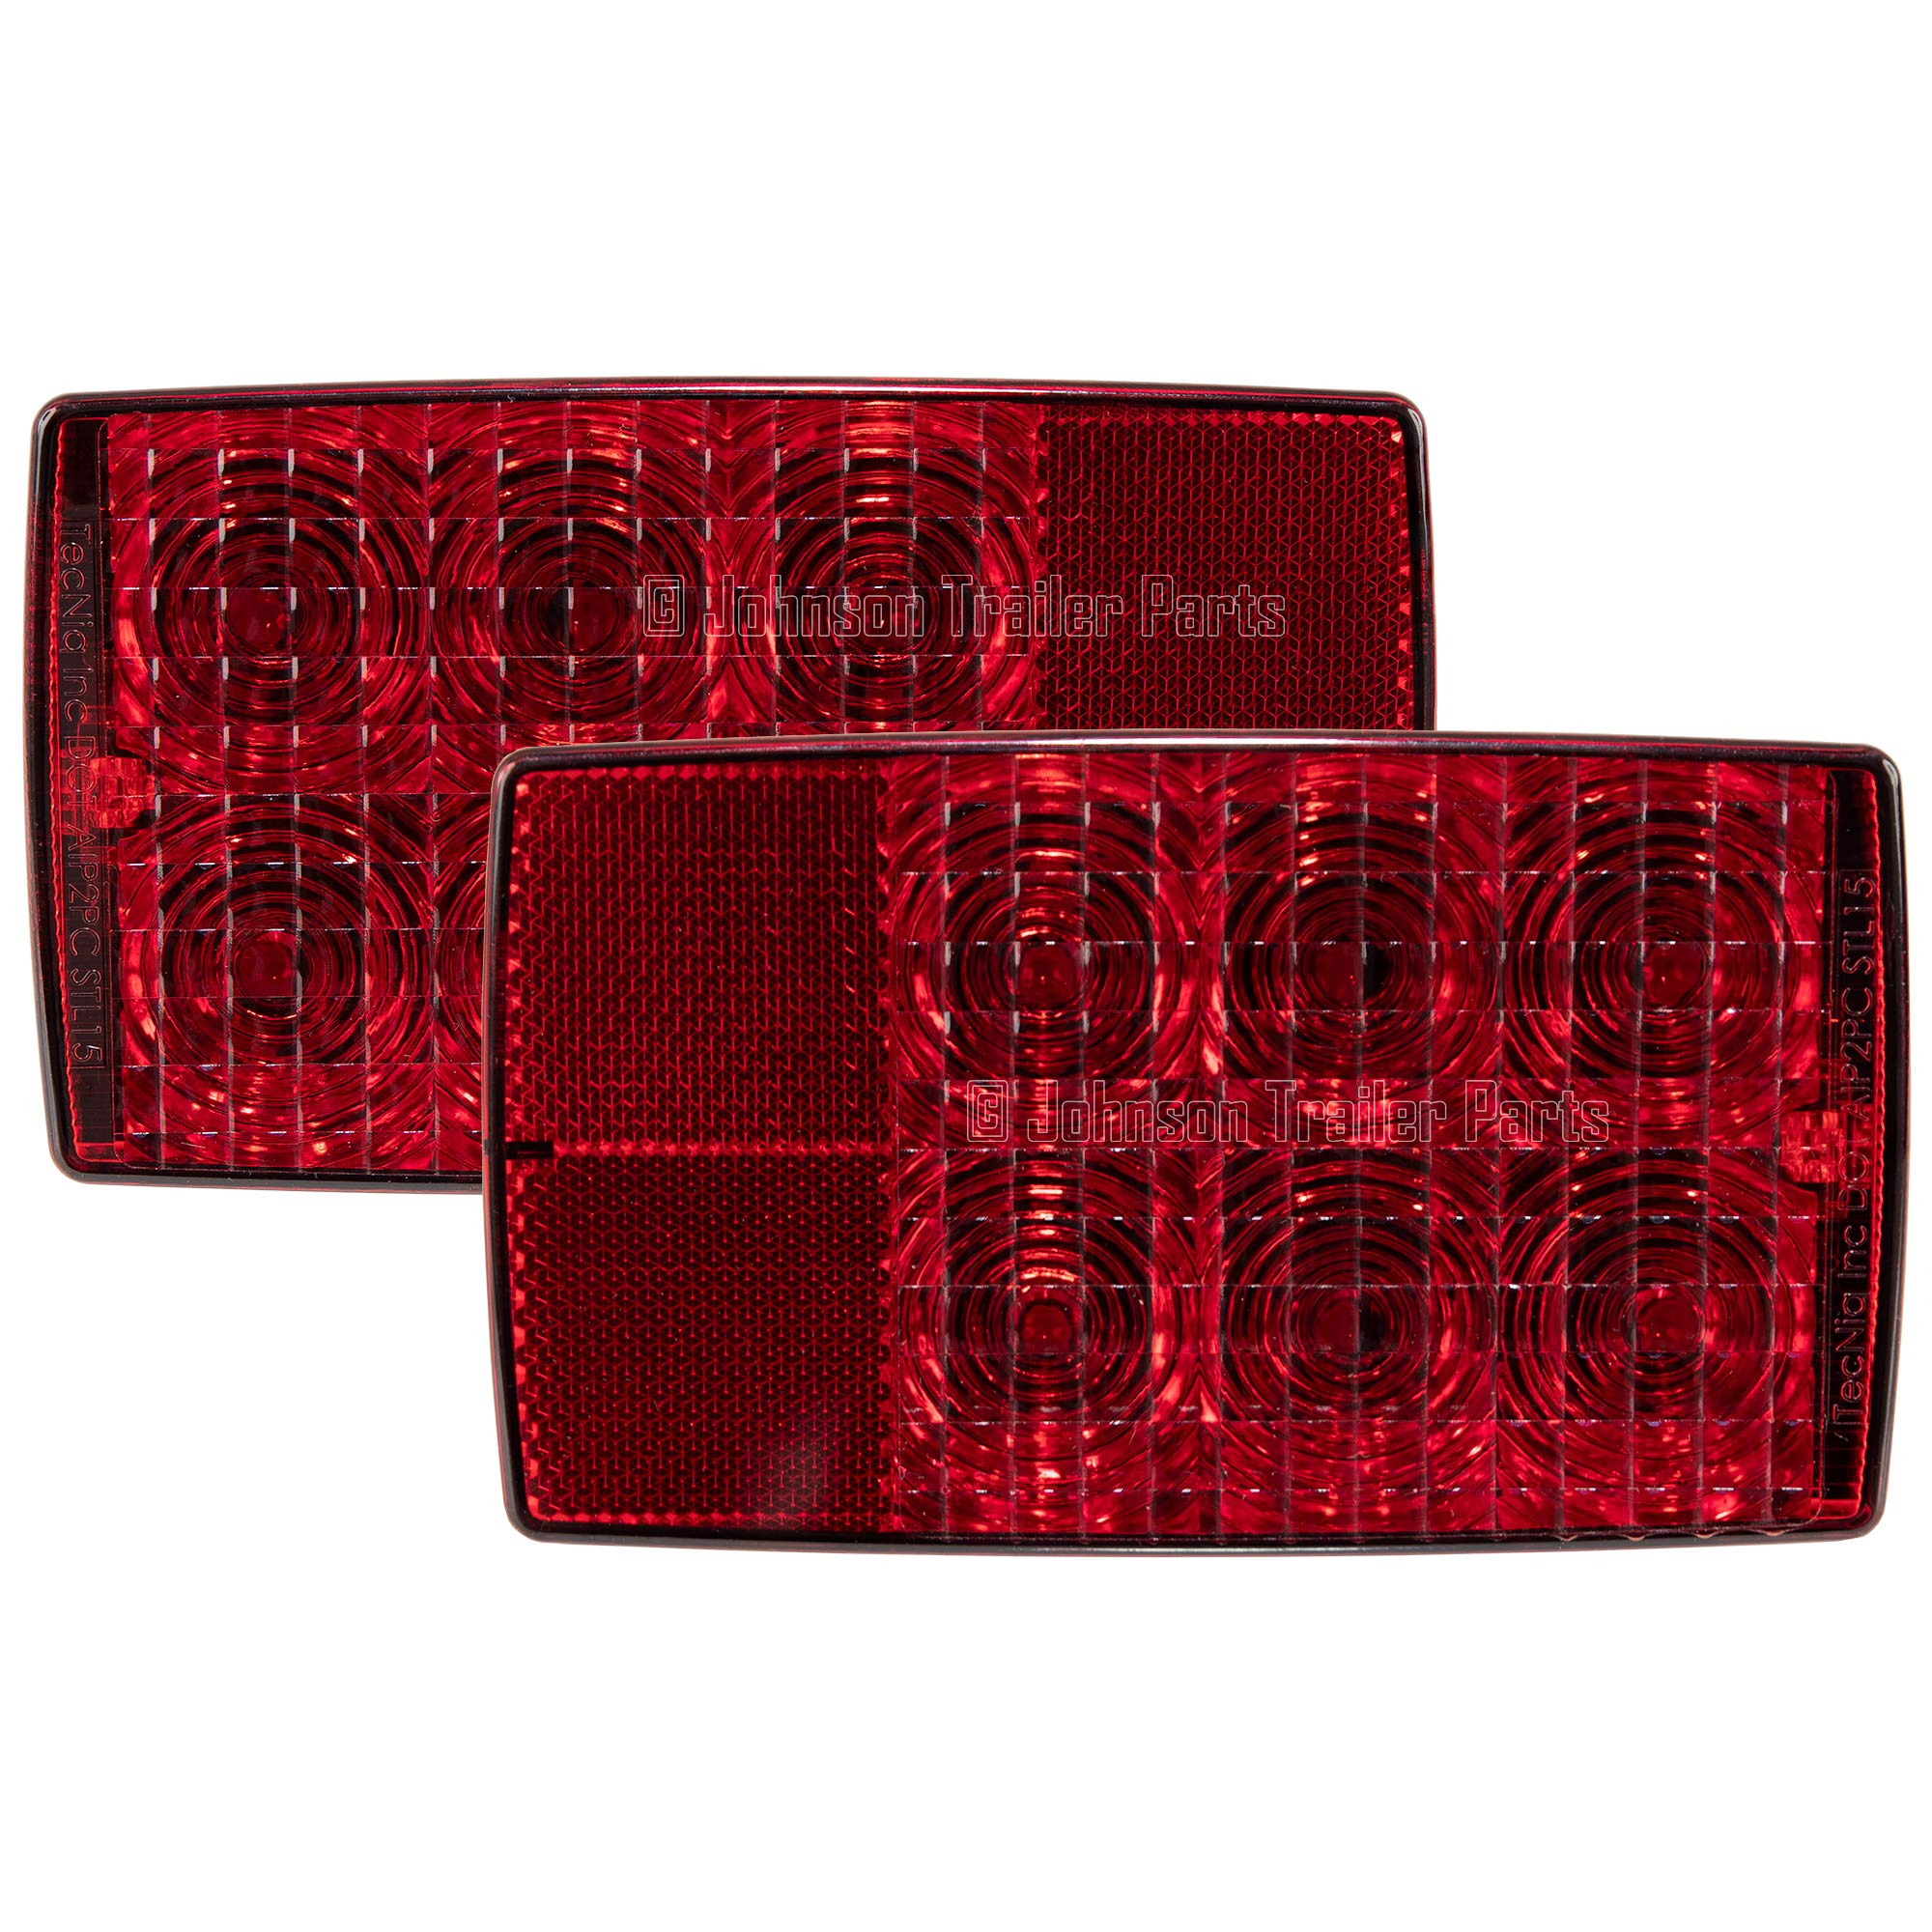 6'' TecNiq Submersible LED Stop -Turn -Tail Light Set For Trucks, Trailers, RVs with License Plate Light by TecNiq, Inc